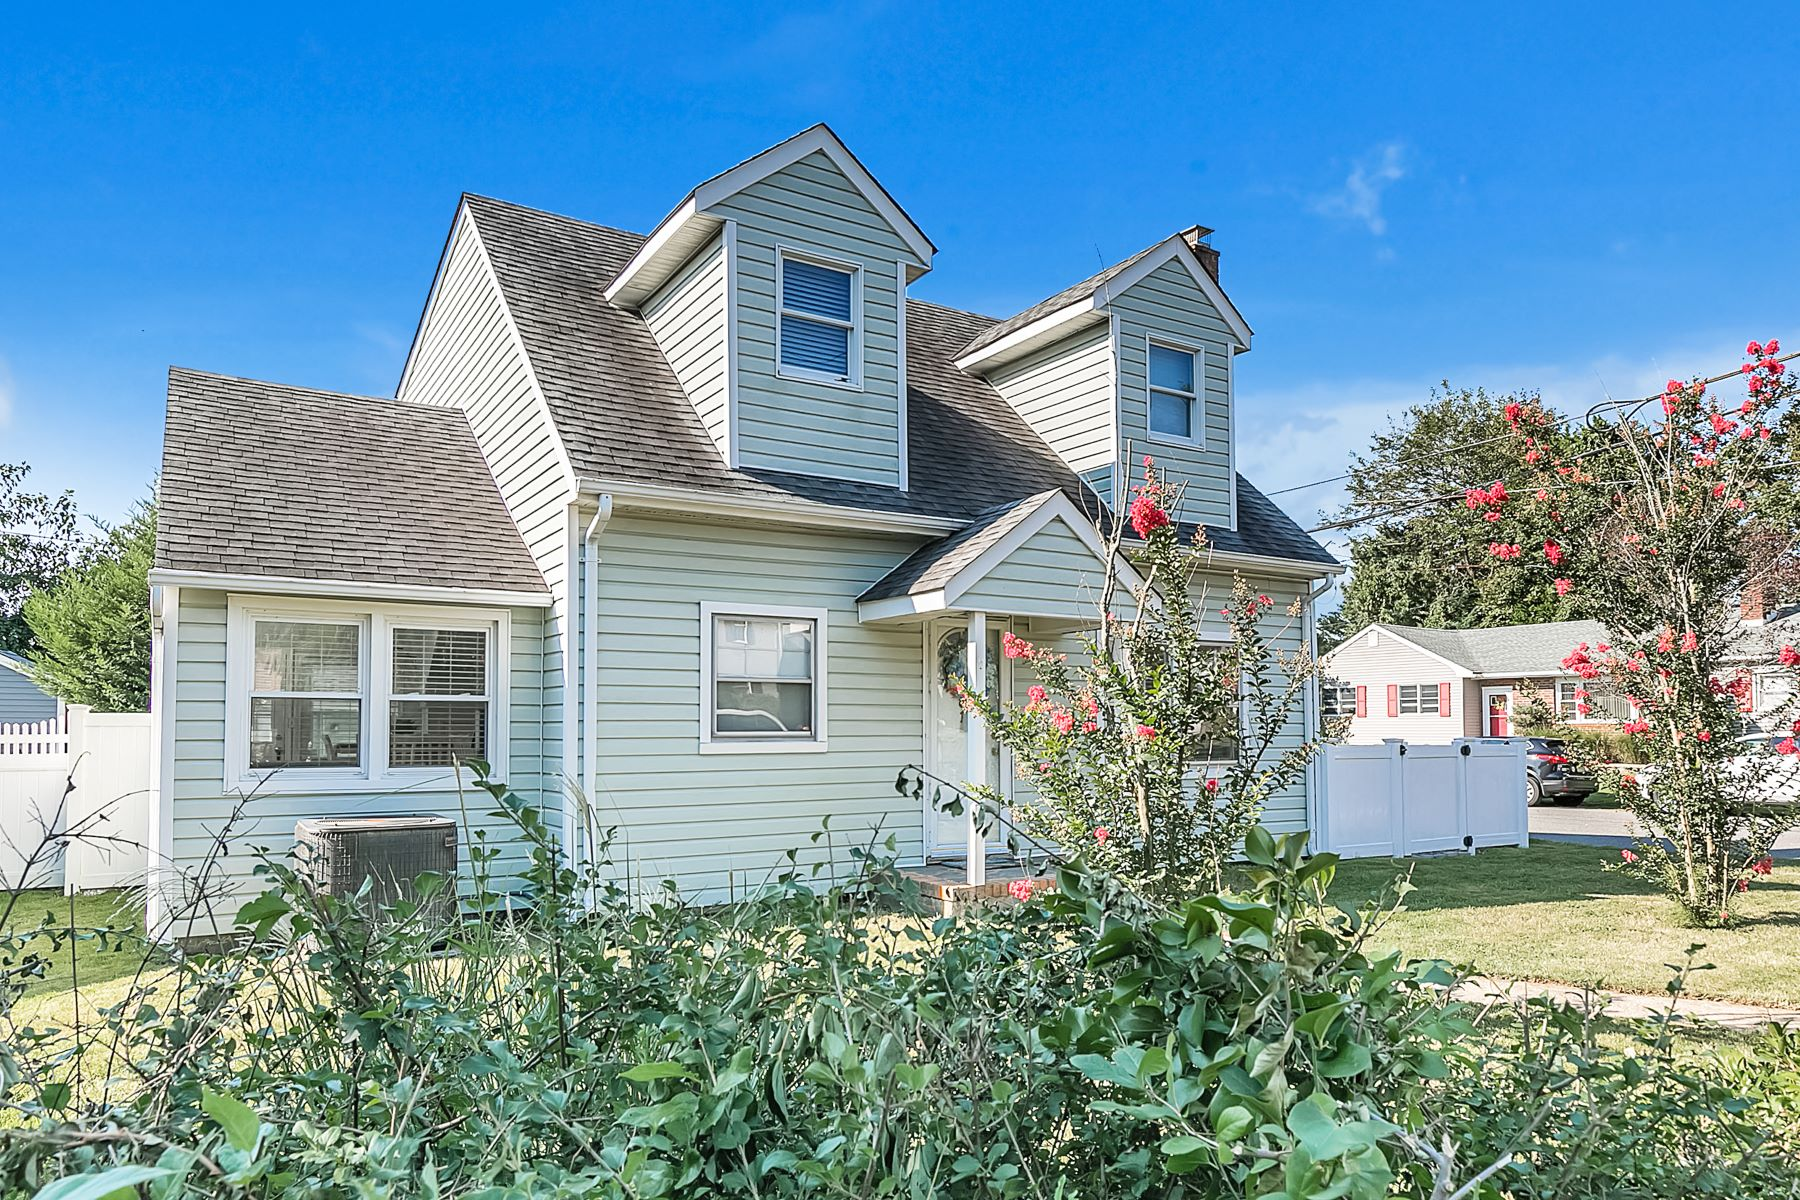 Single Family Homes for Active at Bright and Cheery Cape 1781 Belmar Blvd Wall Township, New Jersey 07719 United States